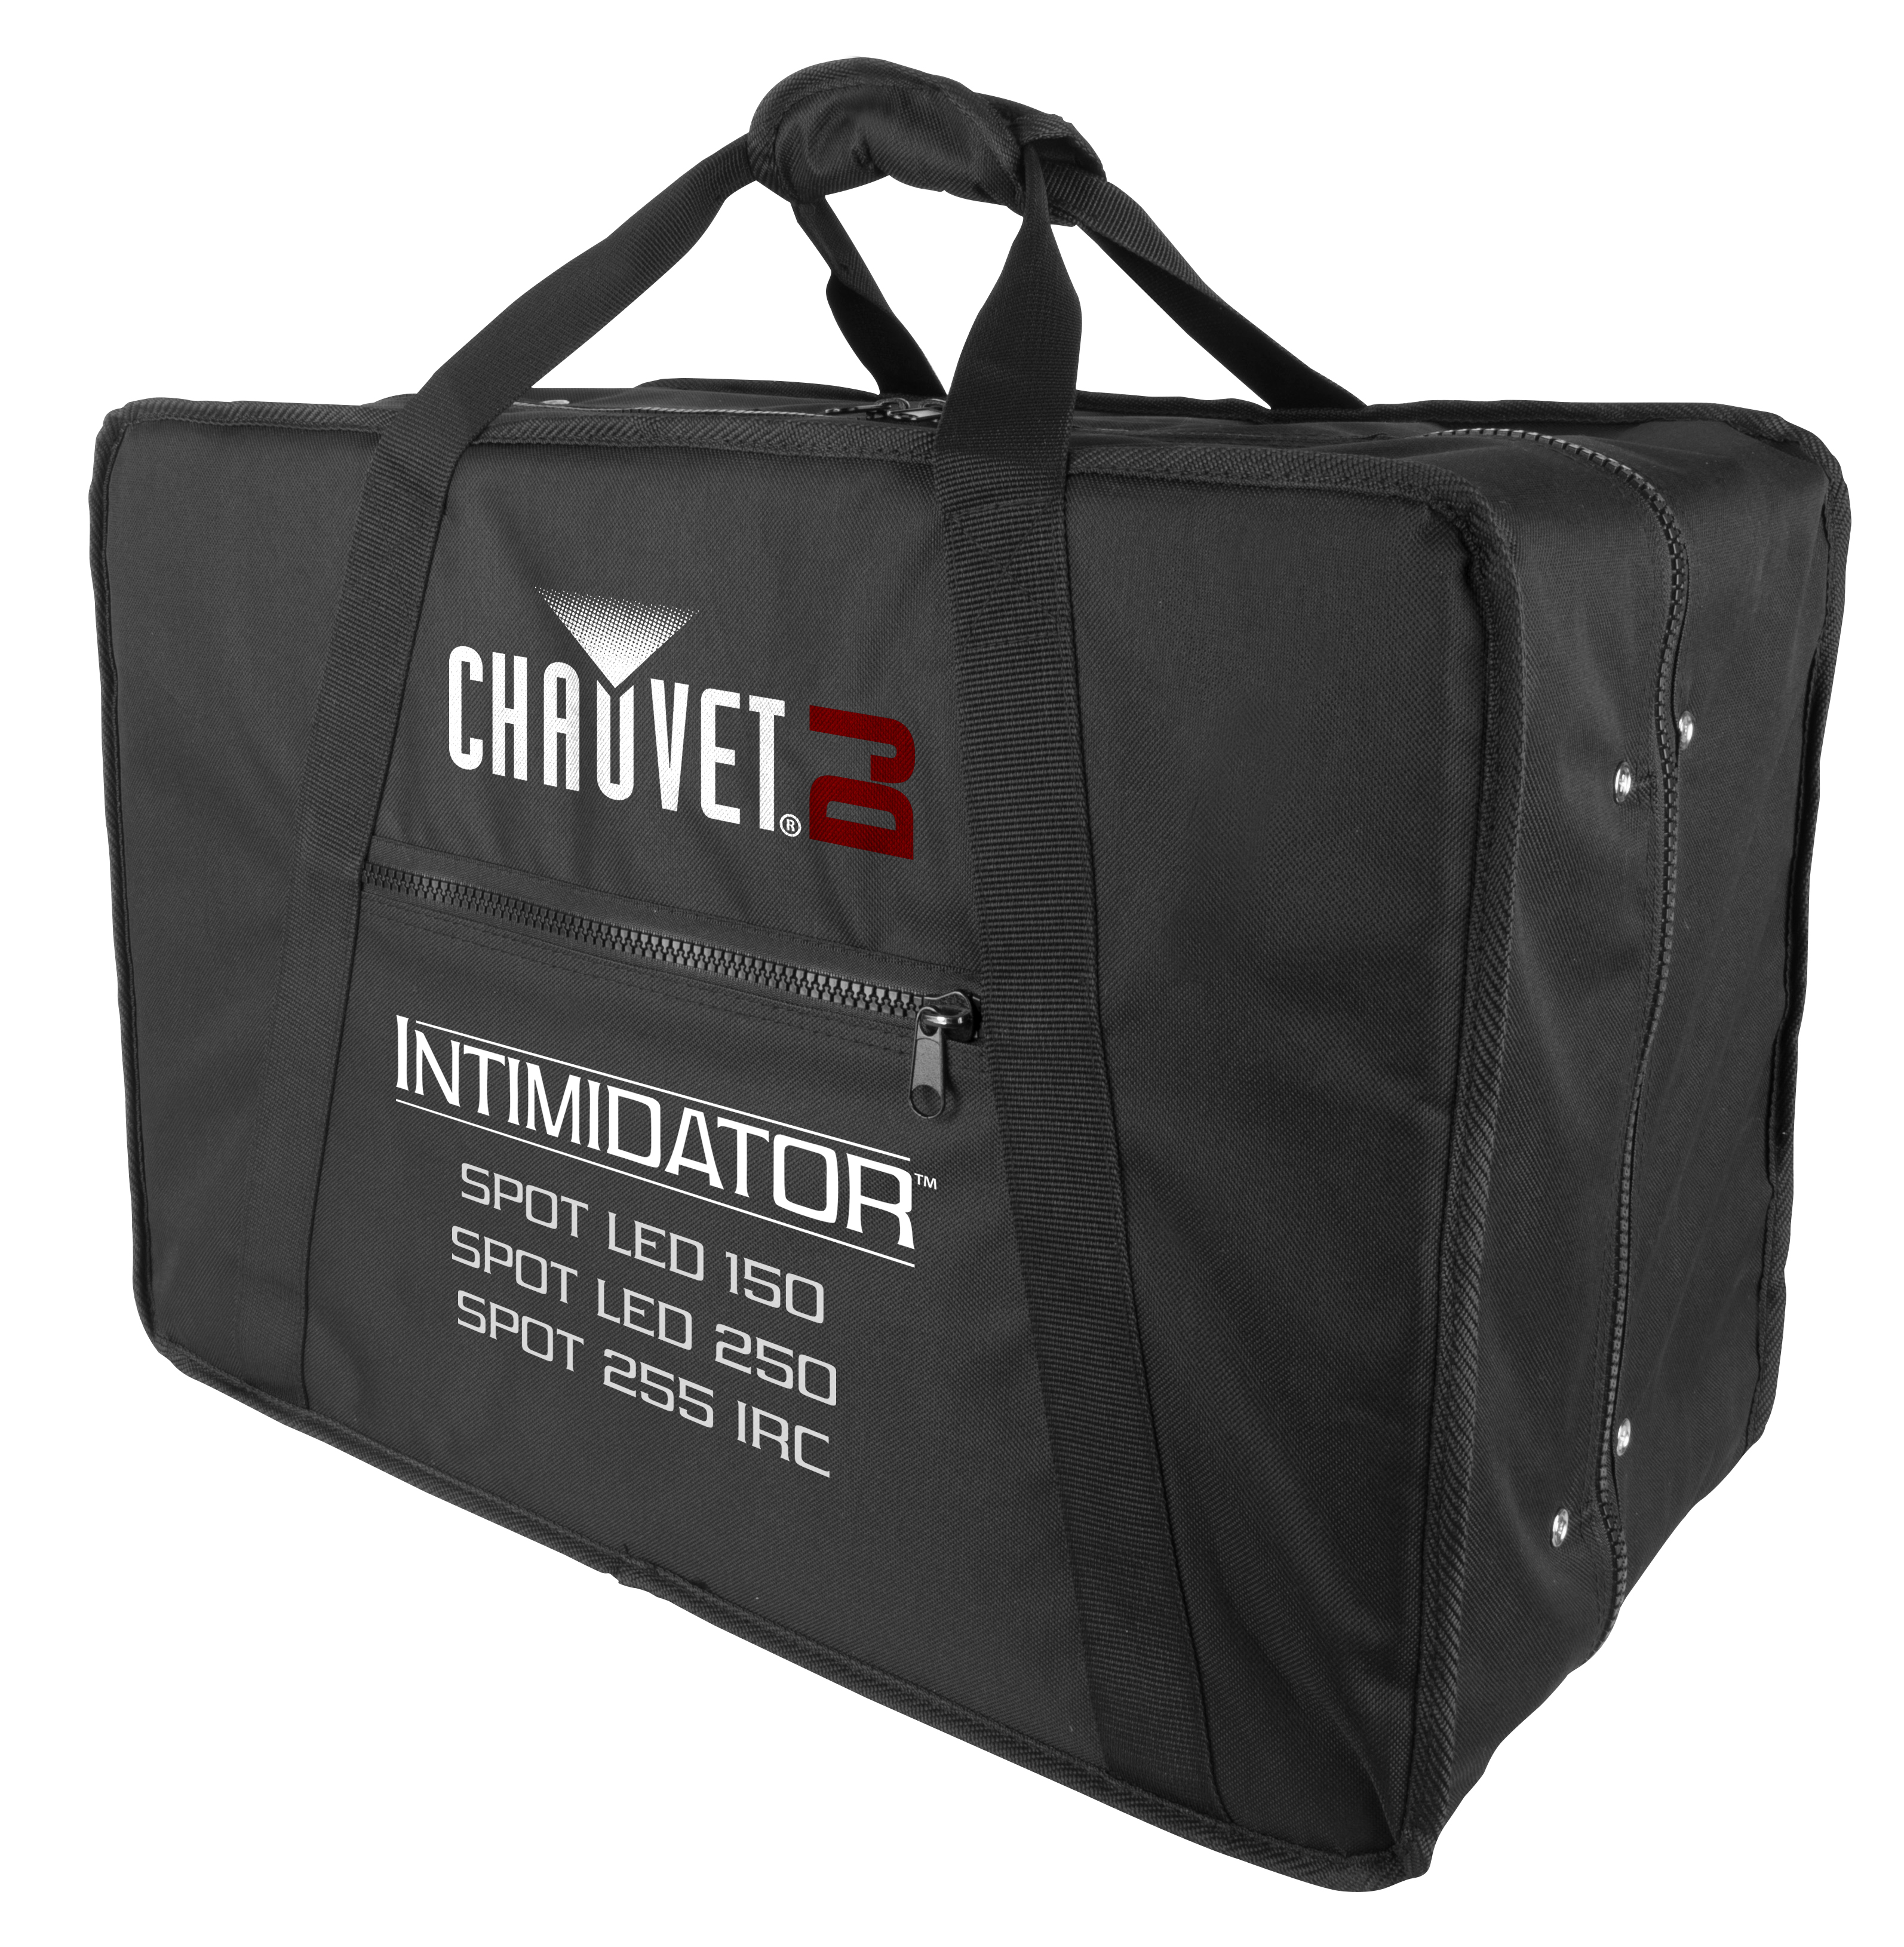 Chauvet CHSX5X Durable Carry Bag for Pair of Intimidator Spot LED 150/250/255 IRC Lighting Fixtures